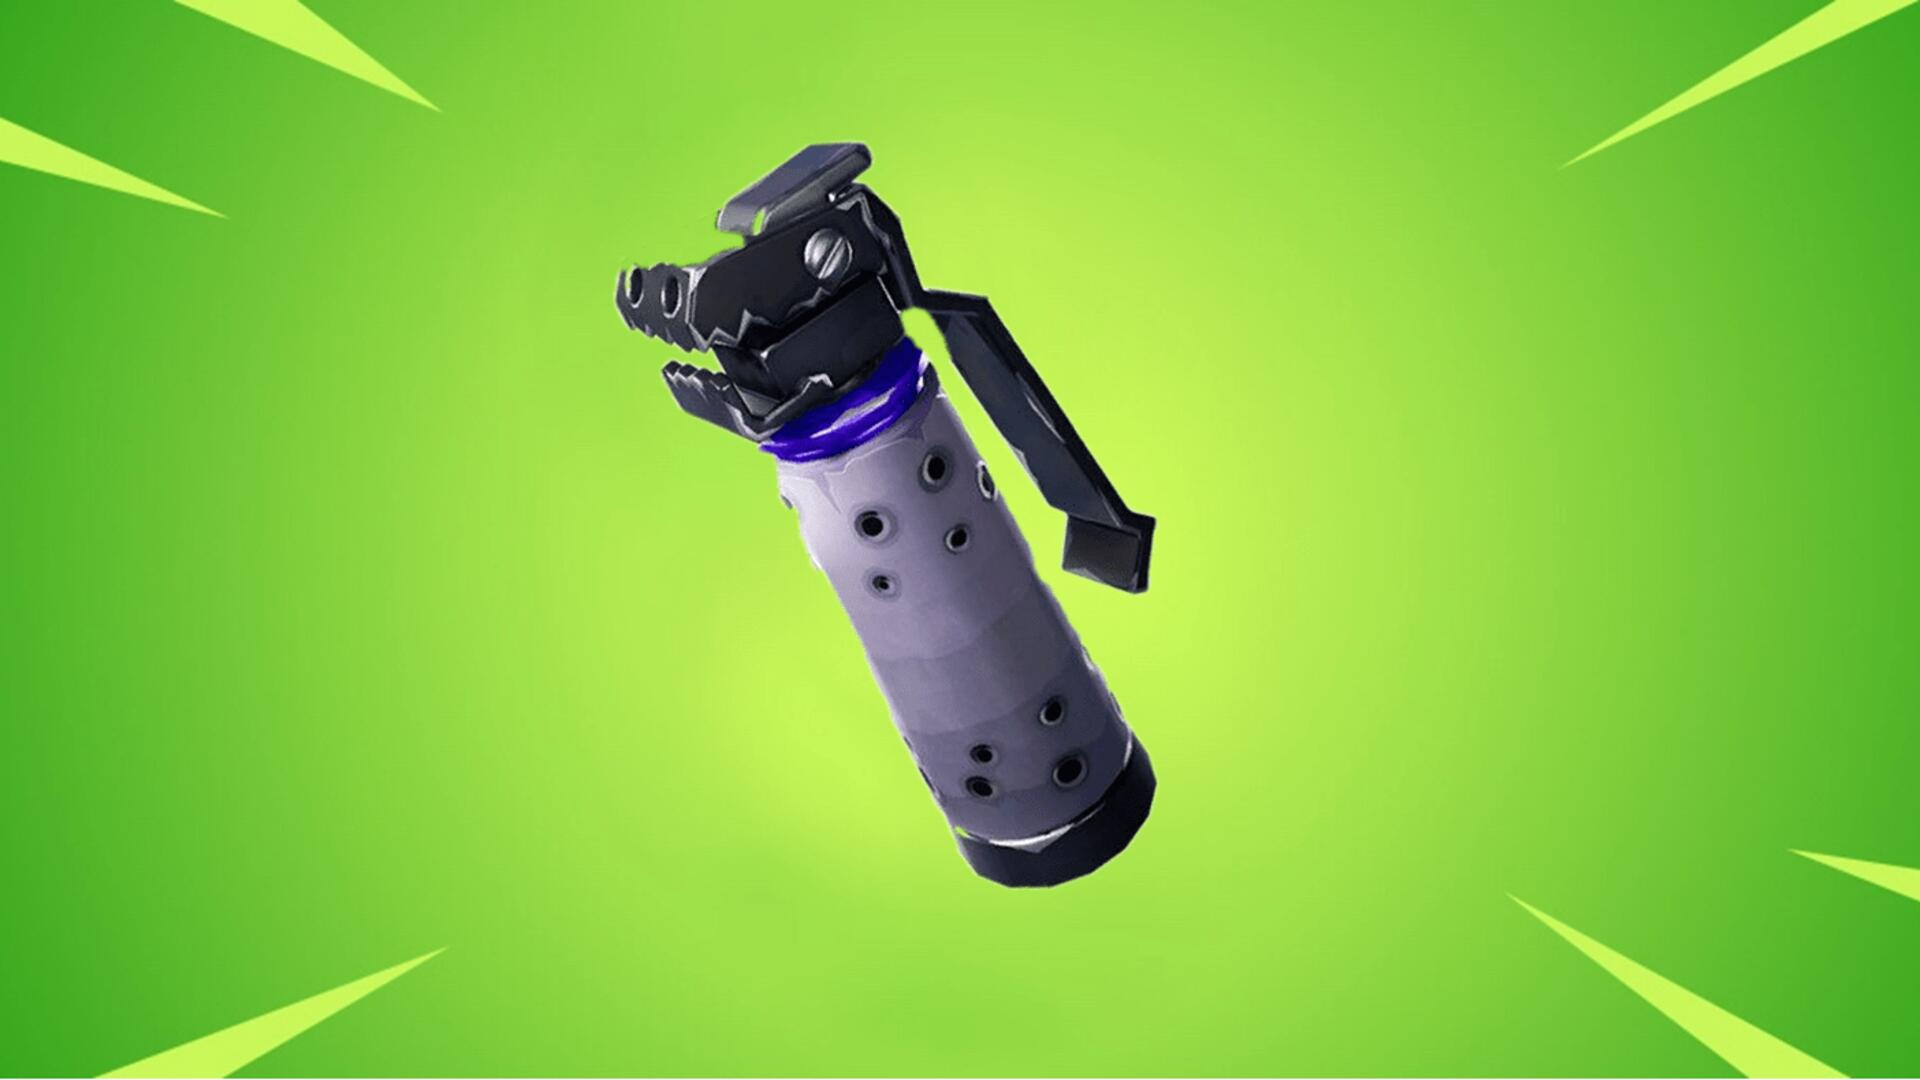 Fortnite V8.51 Patch Notes Are Here, Launching the Shadow Bomb